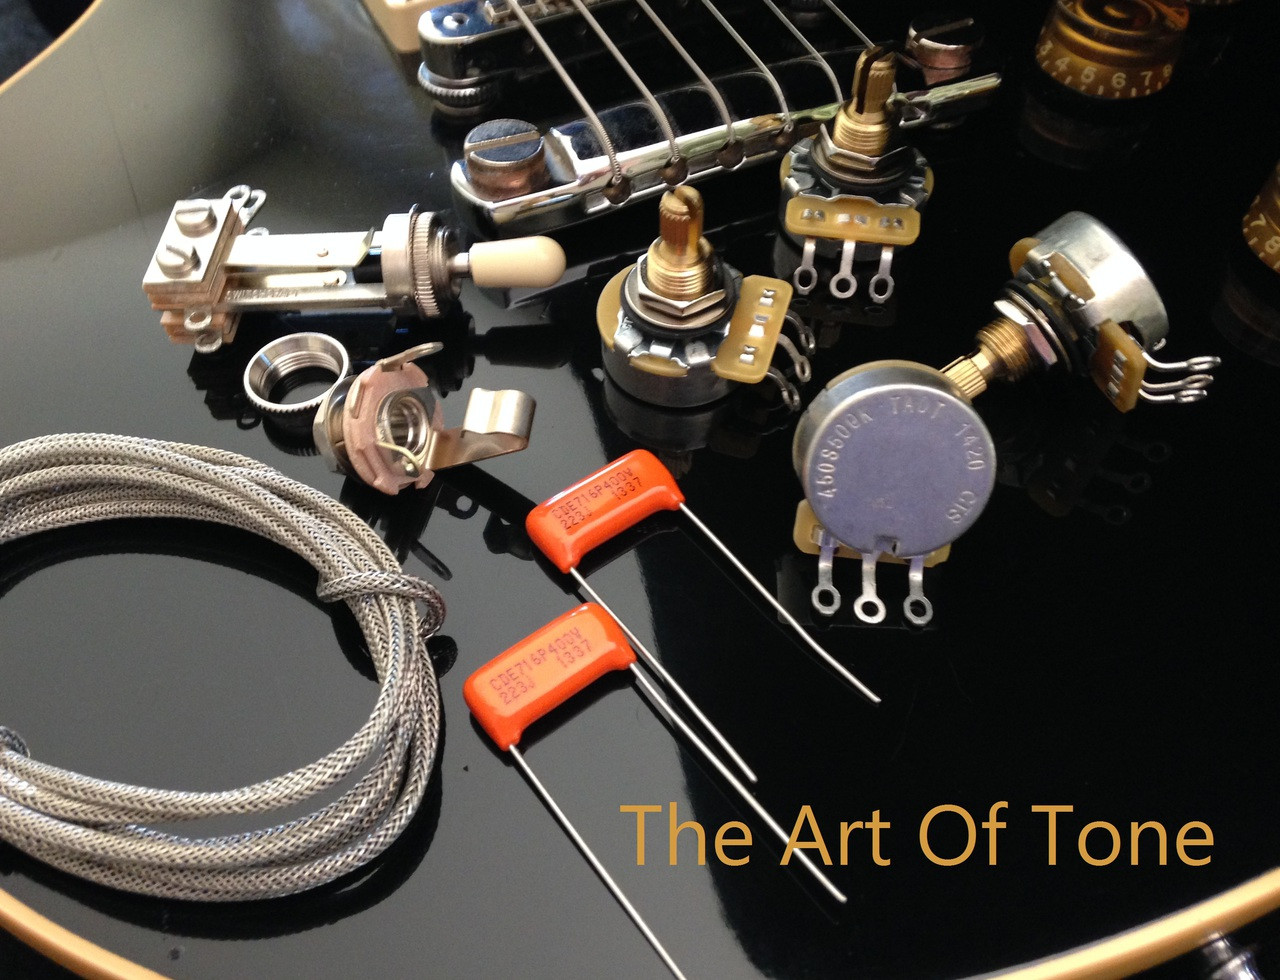 deluxe short shaft wiring kit for gibson usa les paul guitars rh theartoftone com gibson les paul custom wiring kit gibson les paul wiring diagram